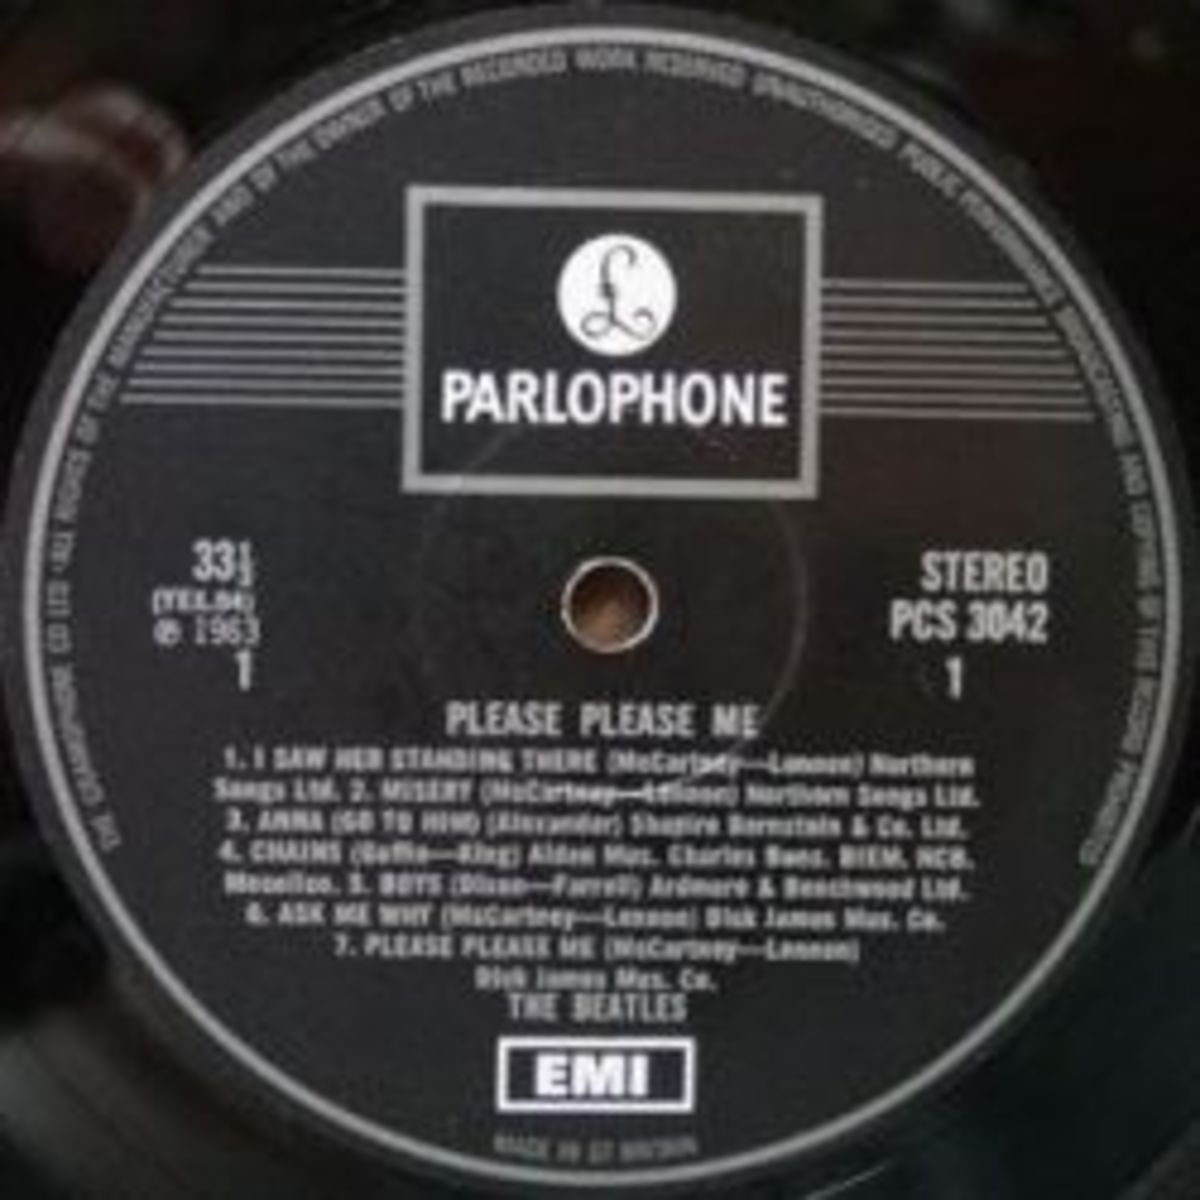 70s Parlophone Record Label & Its Variants